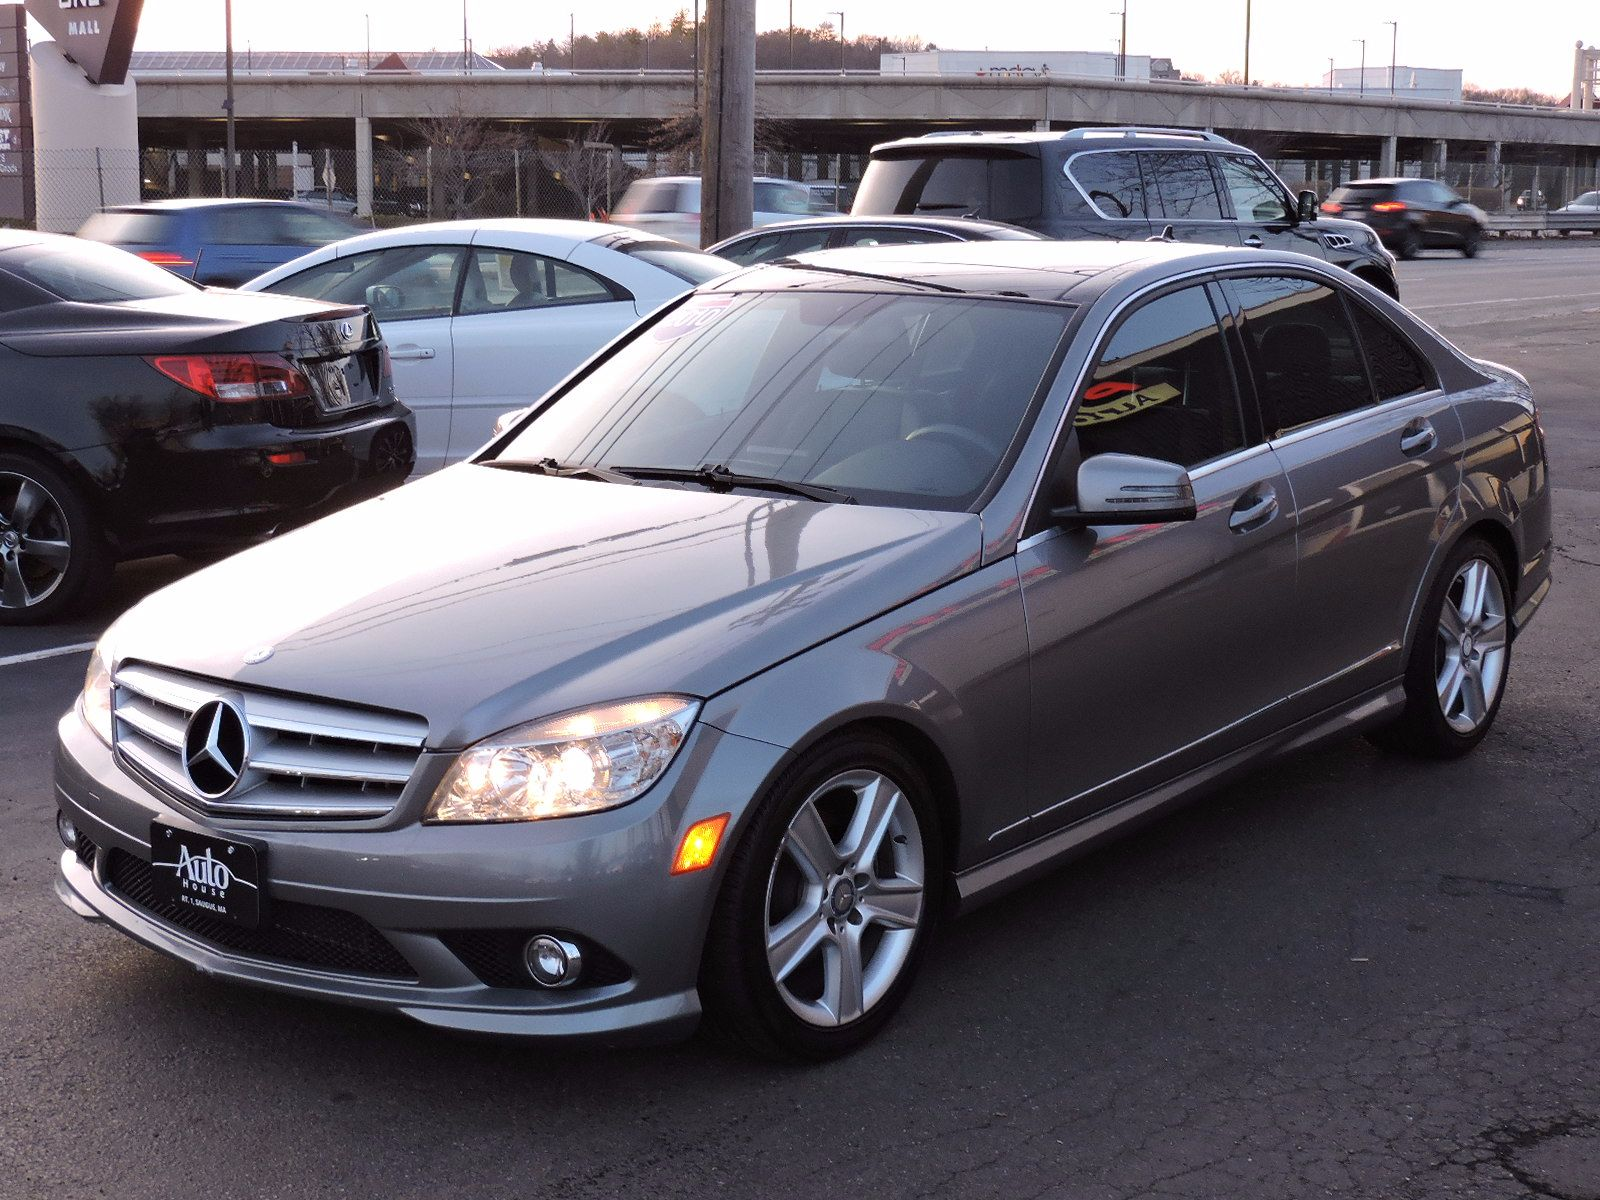 Used 2010 mercedes benz c class c300 sport at auto house for 2010 mercedes benz c300 review